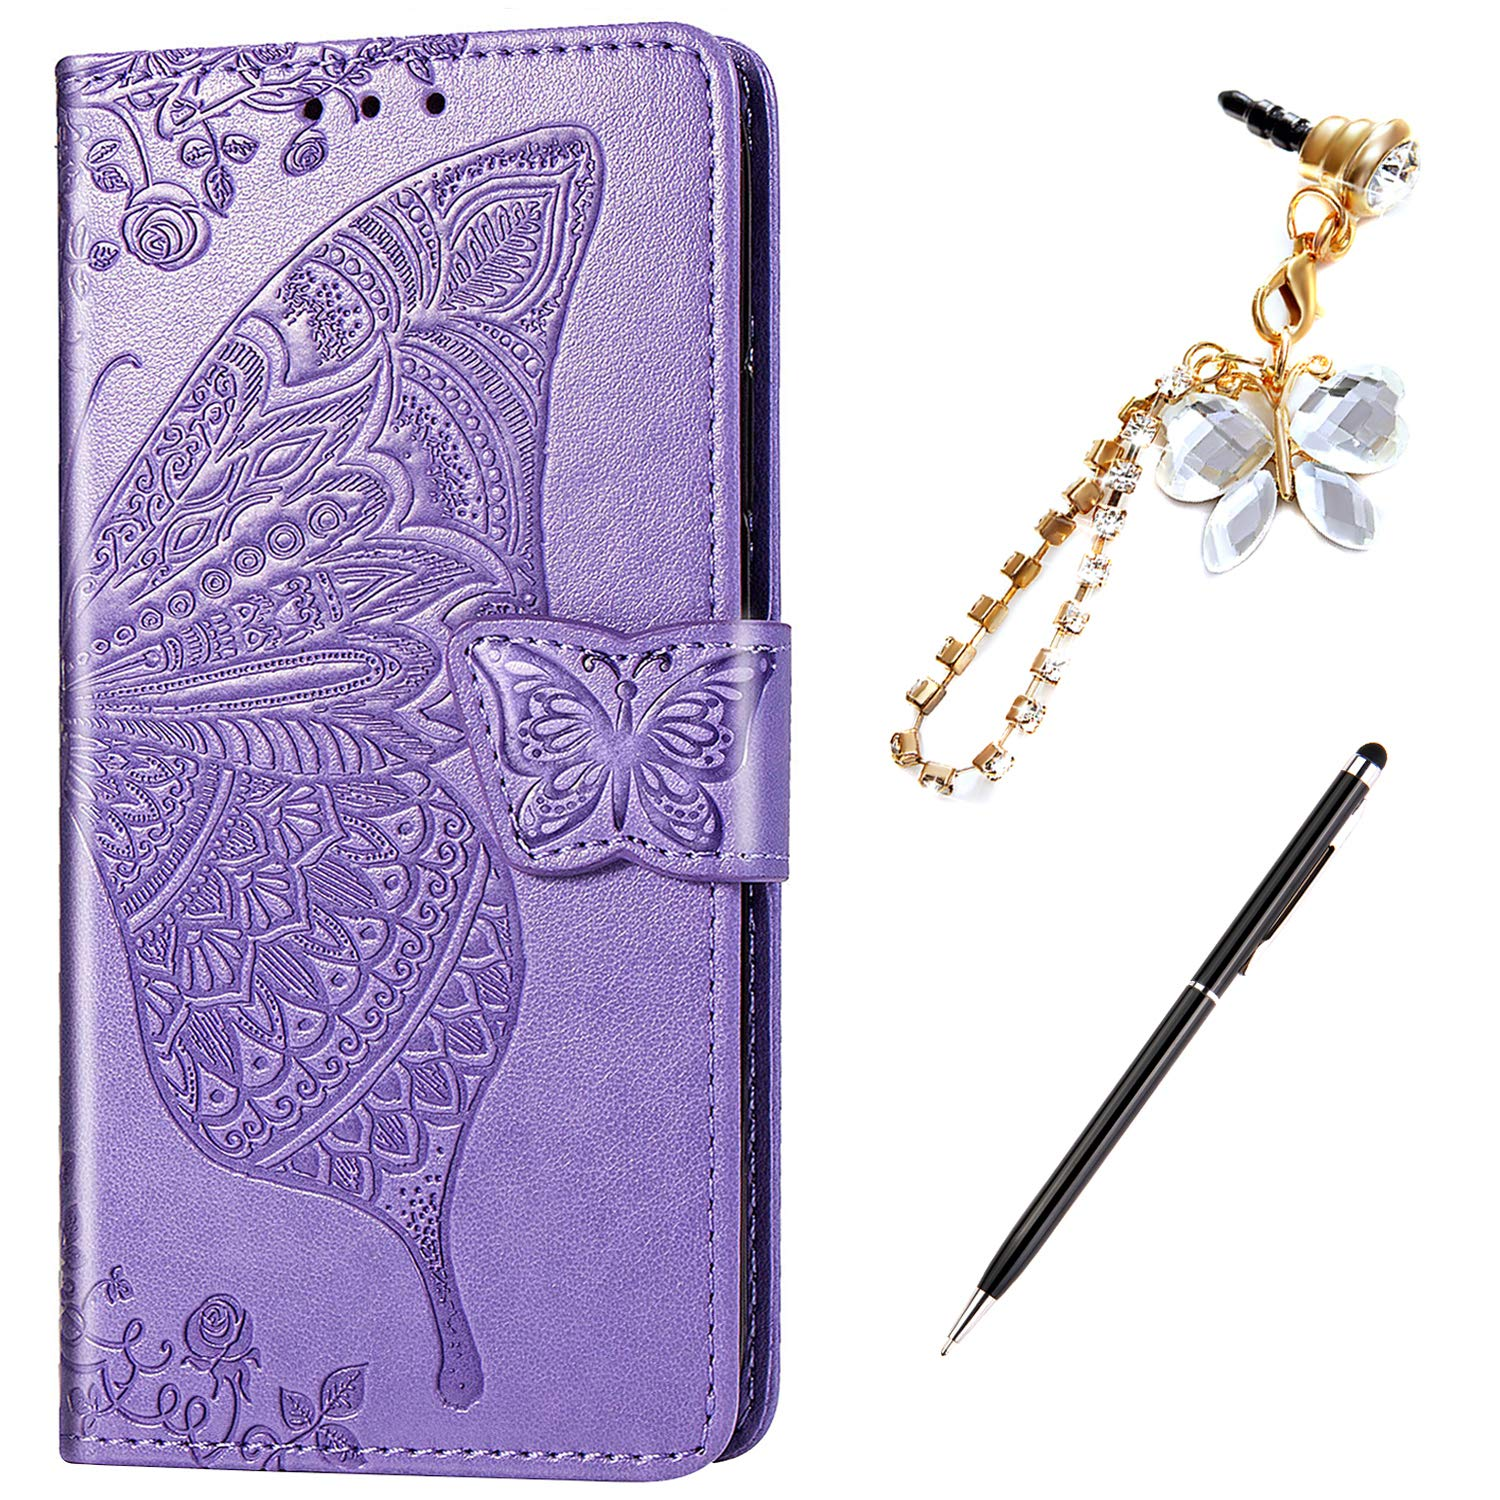 LG K40 Case,LG K12 Plus Case,LG X4 2019 Case,Embossing Mandala Butterfly Rose Vine Flip Wallet Case PU Leather Stand Card Slots Case Cover + Dust Plug Stylus for LG K40 Wallet Case,Light Purple by ikasus